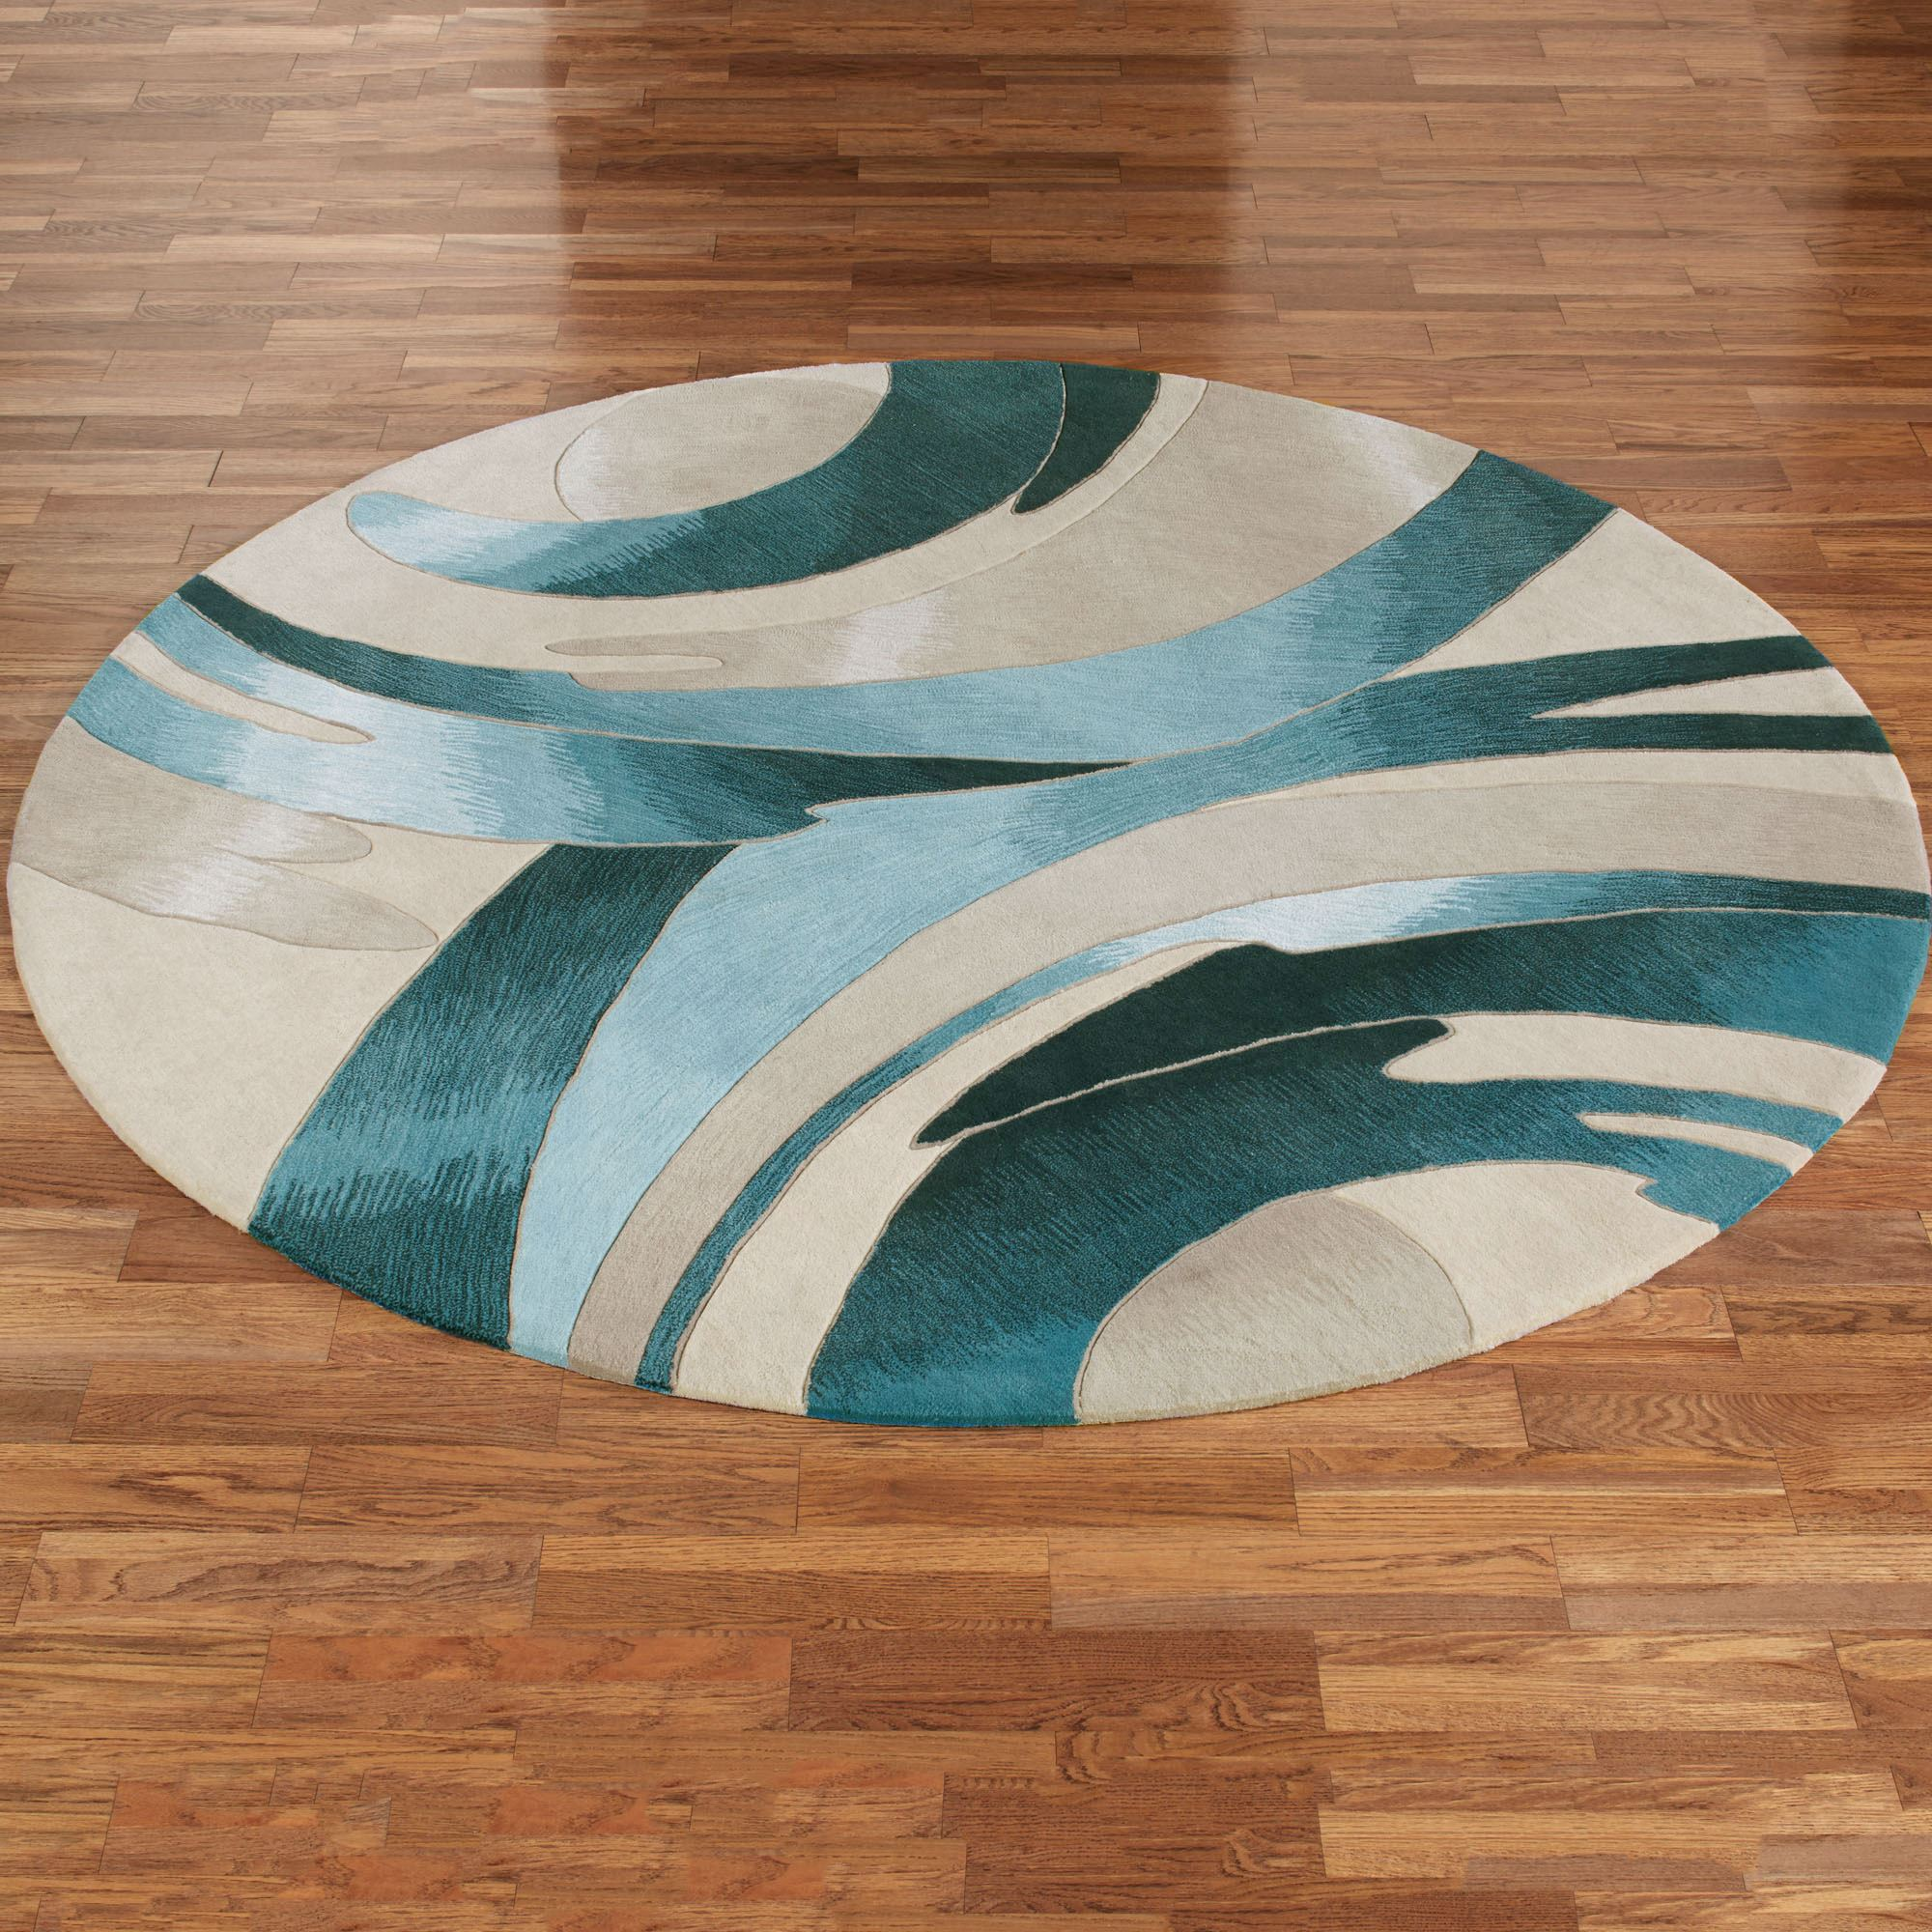 wonderful circular rugs perfect storm abstract round rugs by jasonw studios  jhlyfgd MSPORHE